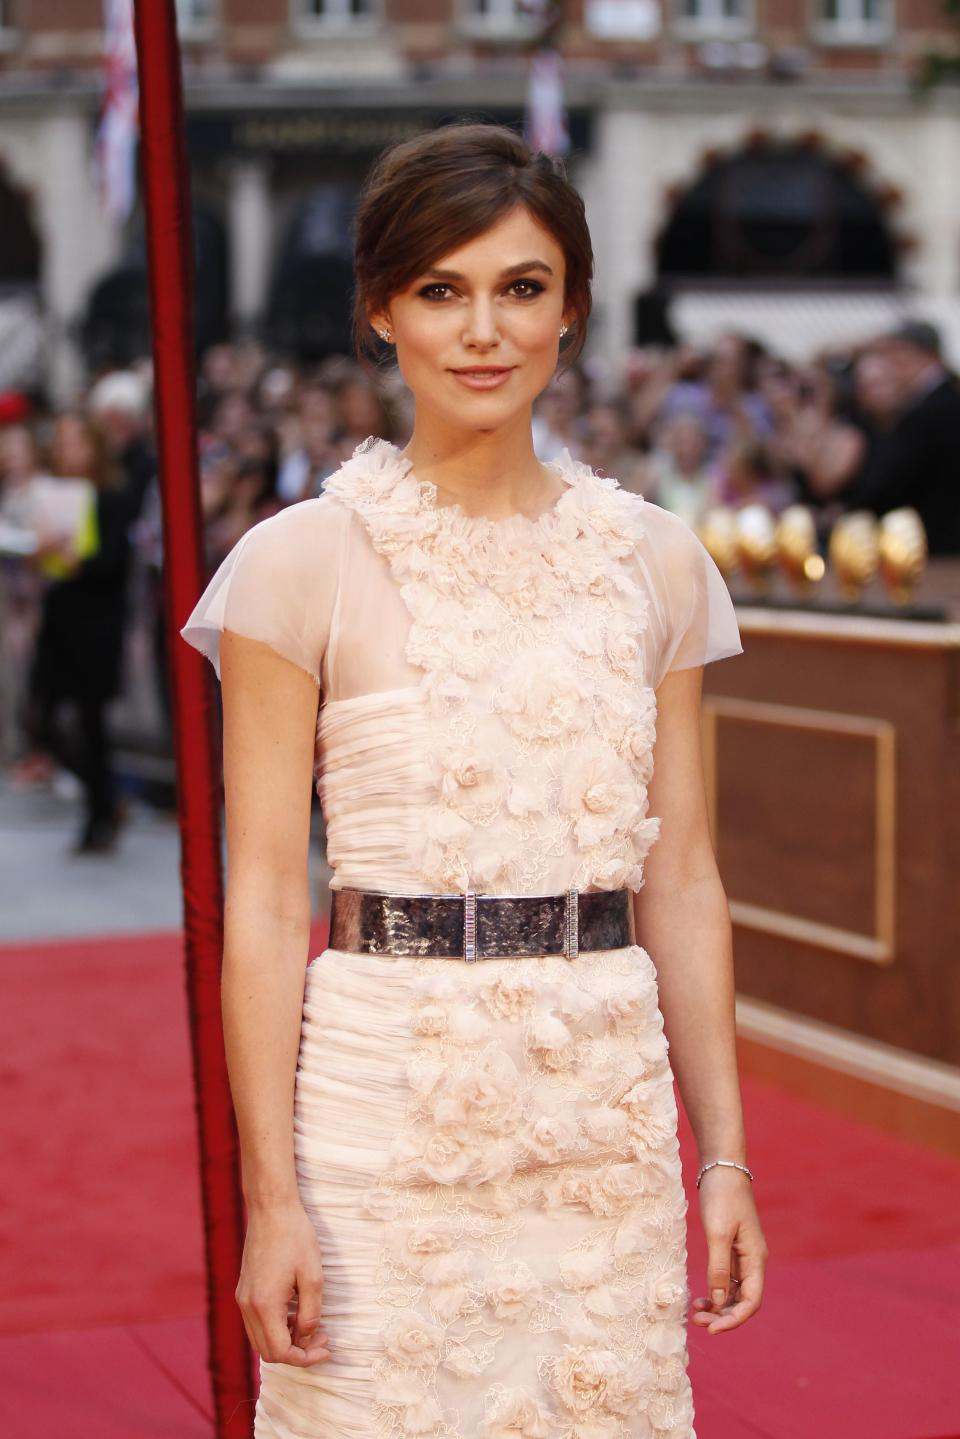 Cast member British actress Keira Knightley poses as she arrives for the world premiere of Anna Karenina in London, Tuesday, Sept. 4, 2012. (AP Photo/Sang Tan)